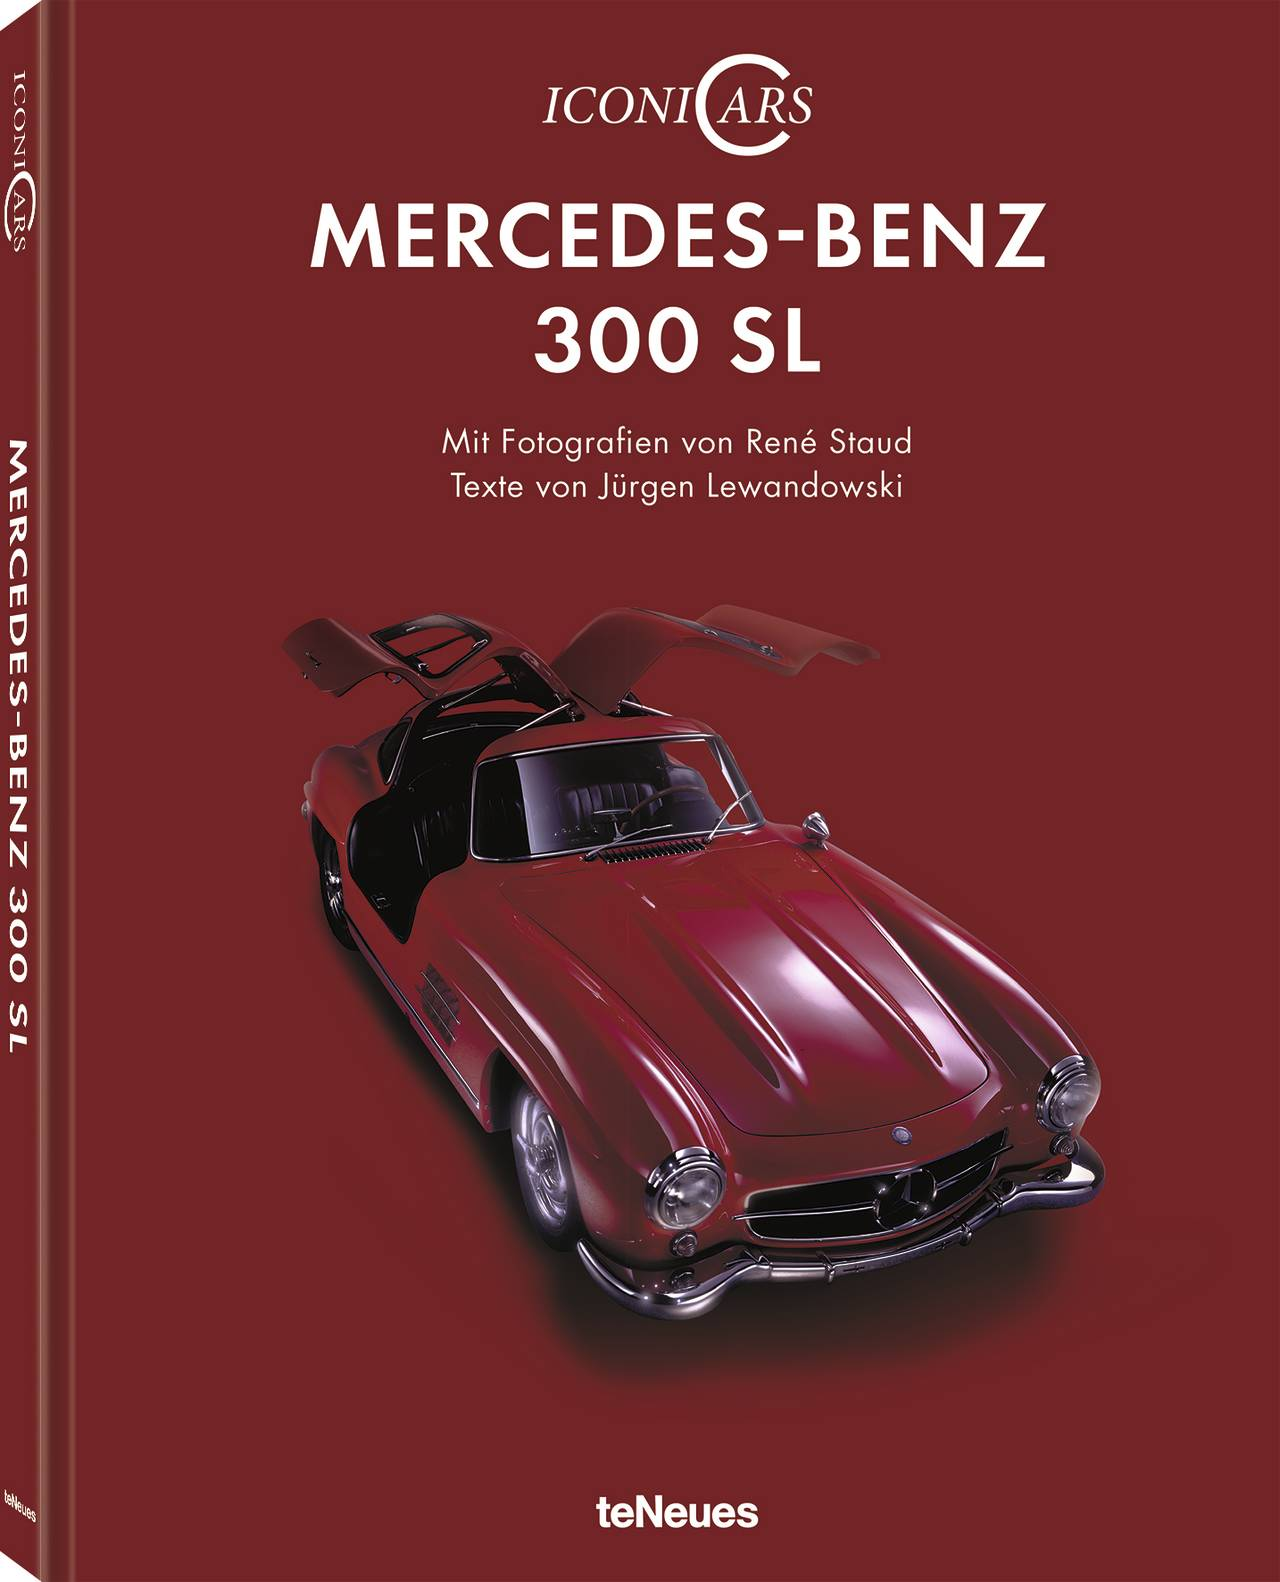 © IconiCars Mercedes-Benz 300 SL, erschienen bei teNeues, € 24,95, www.teneues.com, Photo © Staud Studios GmbH, Leonberg, Germany. www.staudstudios.com